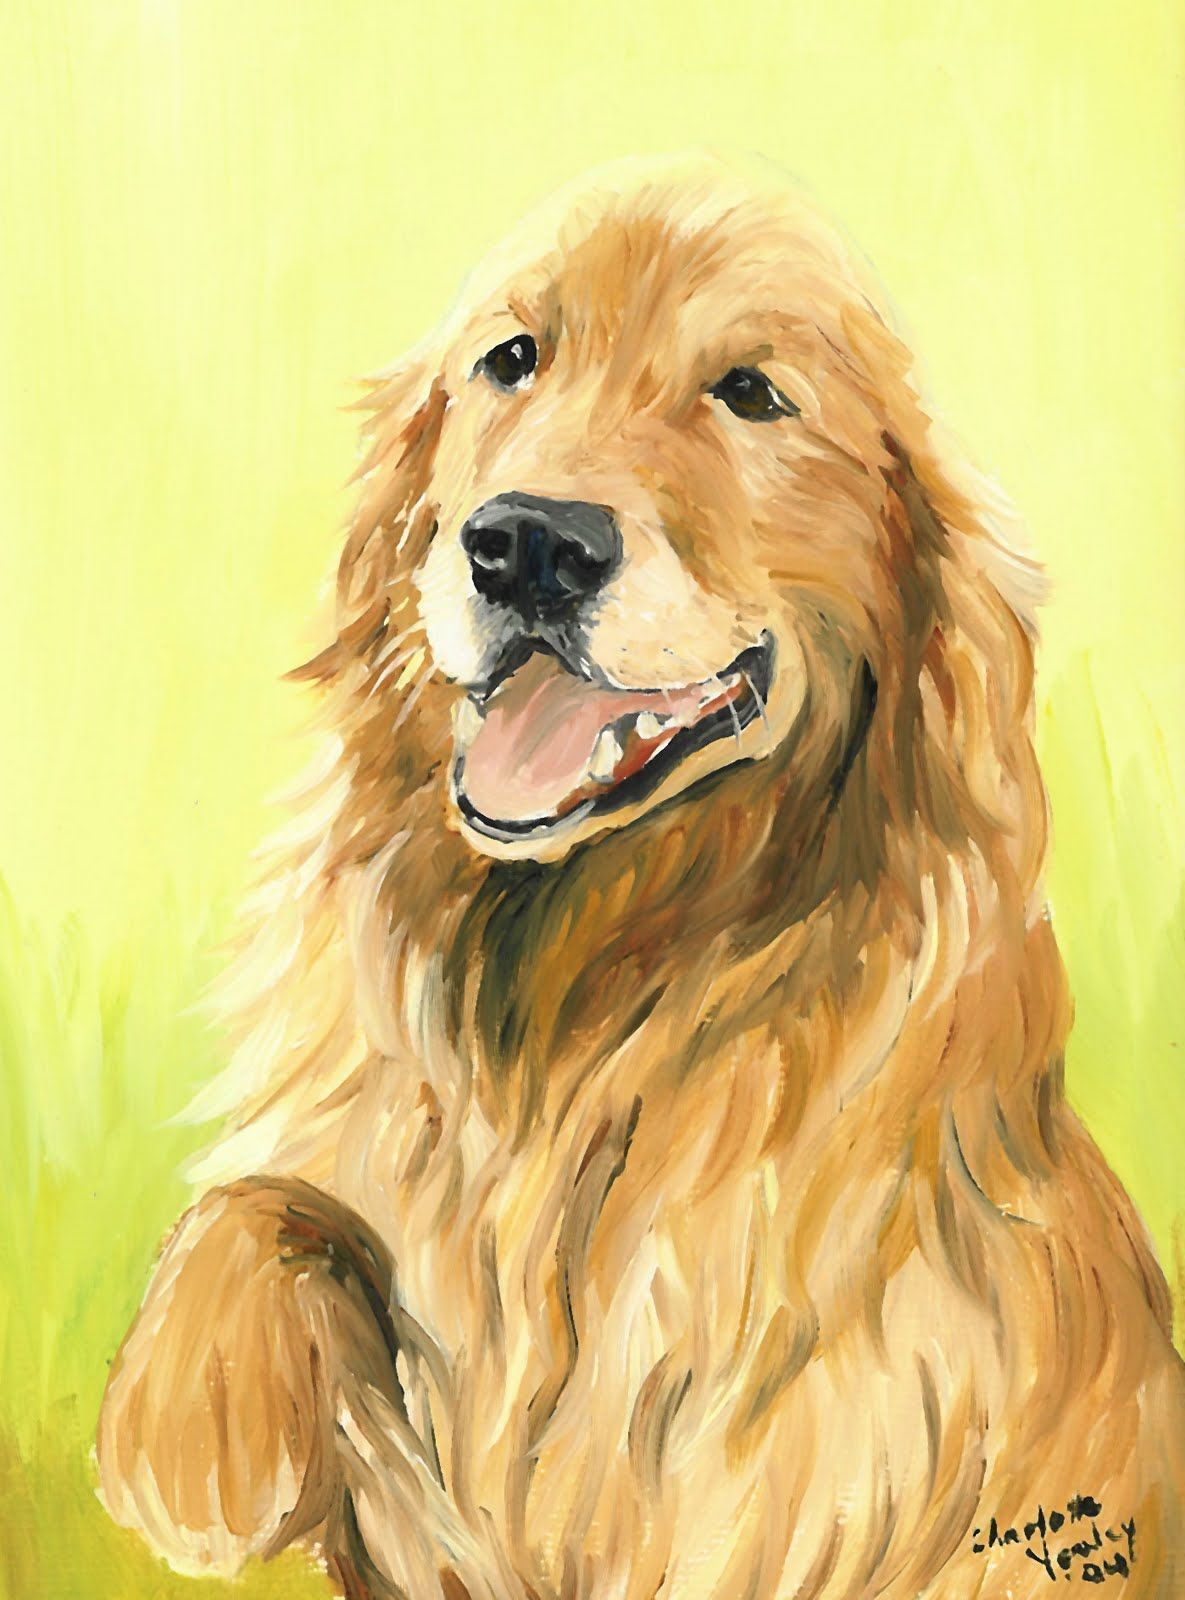 How To Paint A Golden Retriever Is A Painting I Created Of A